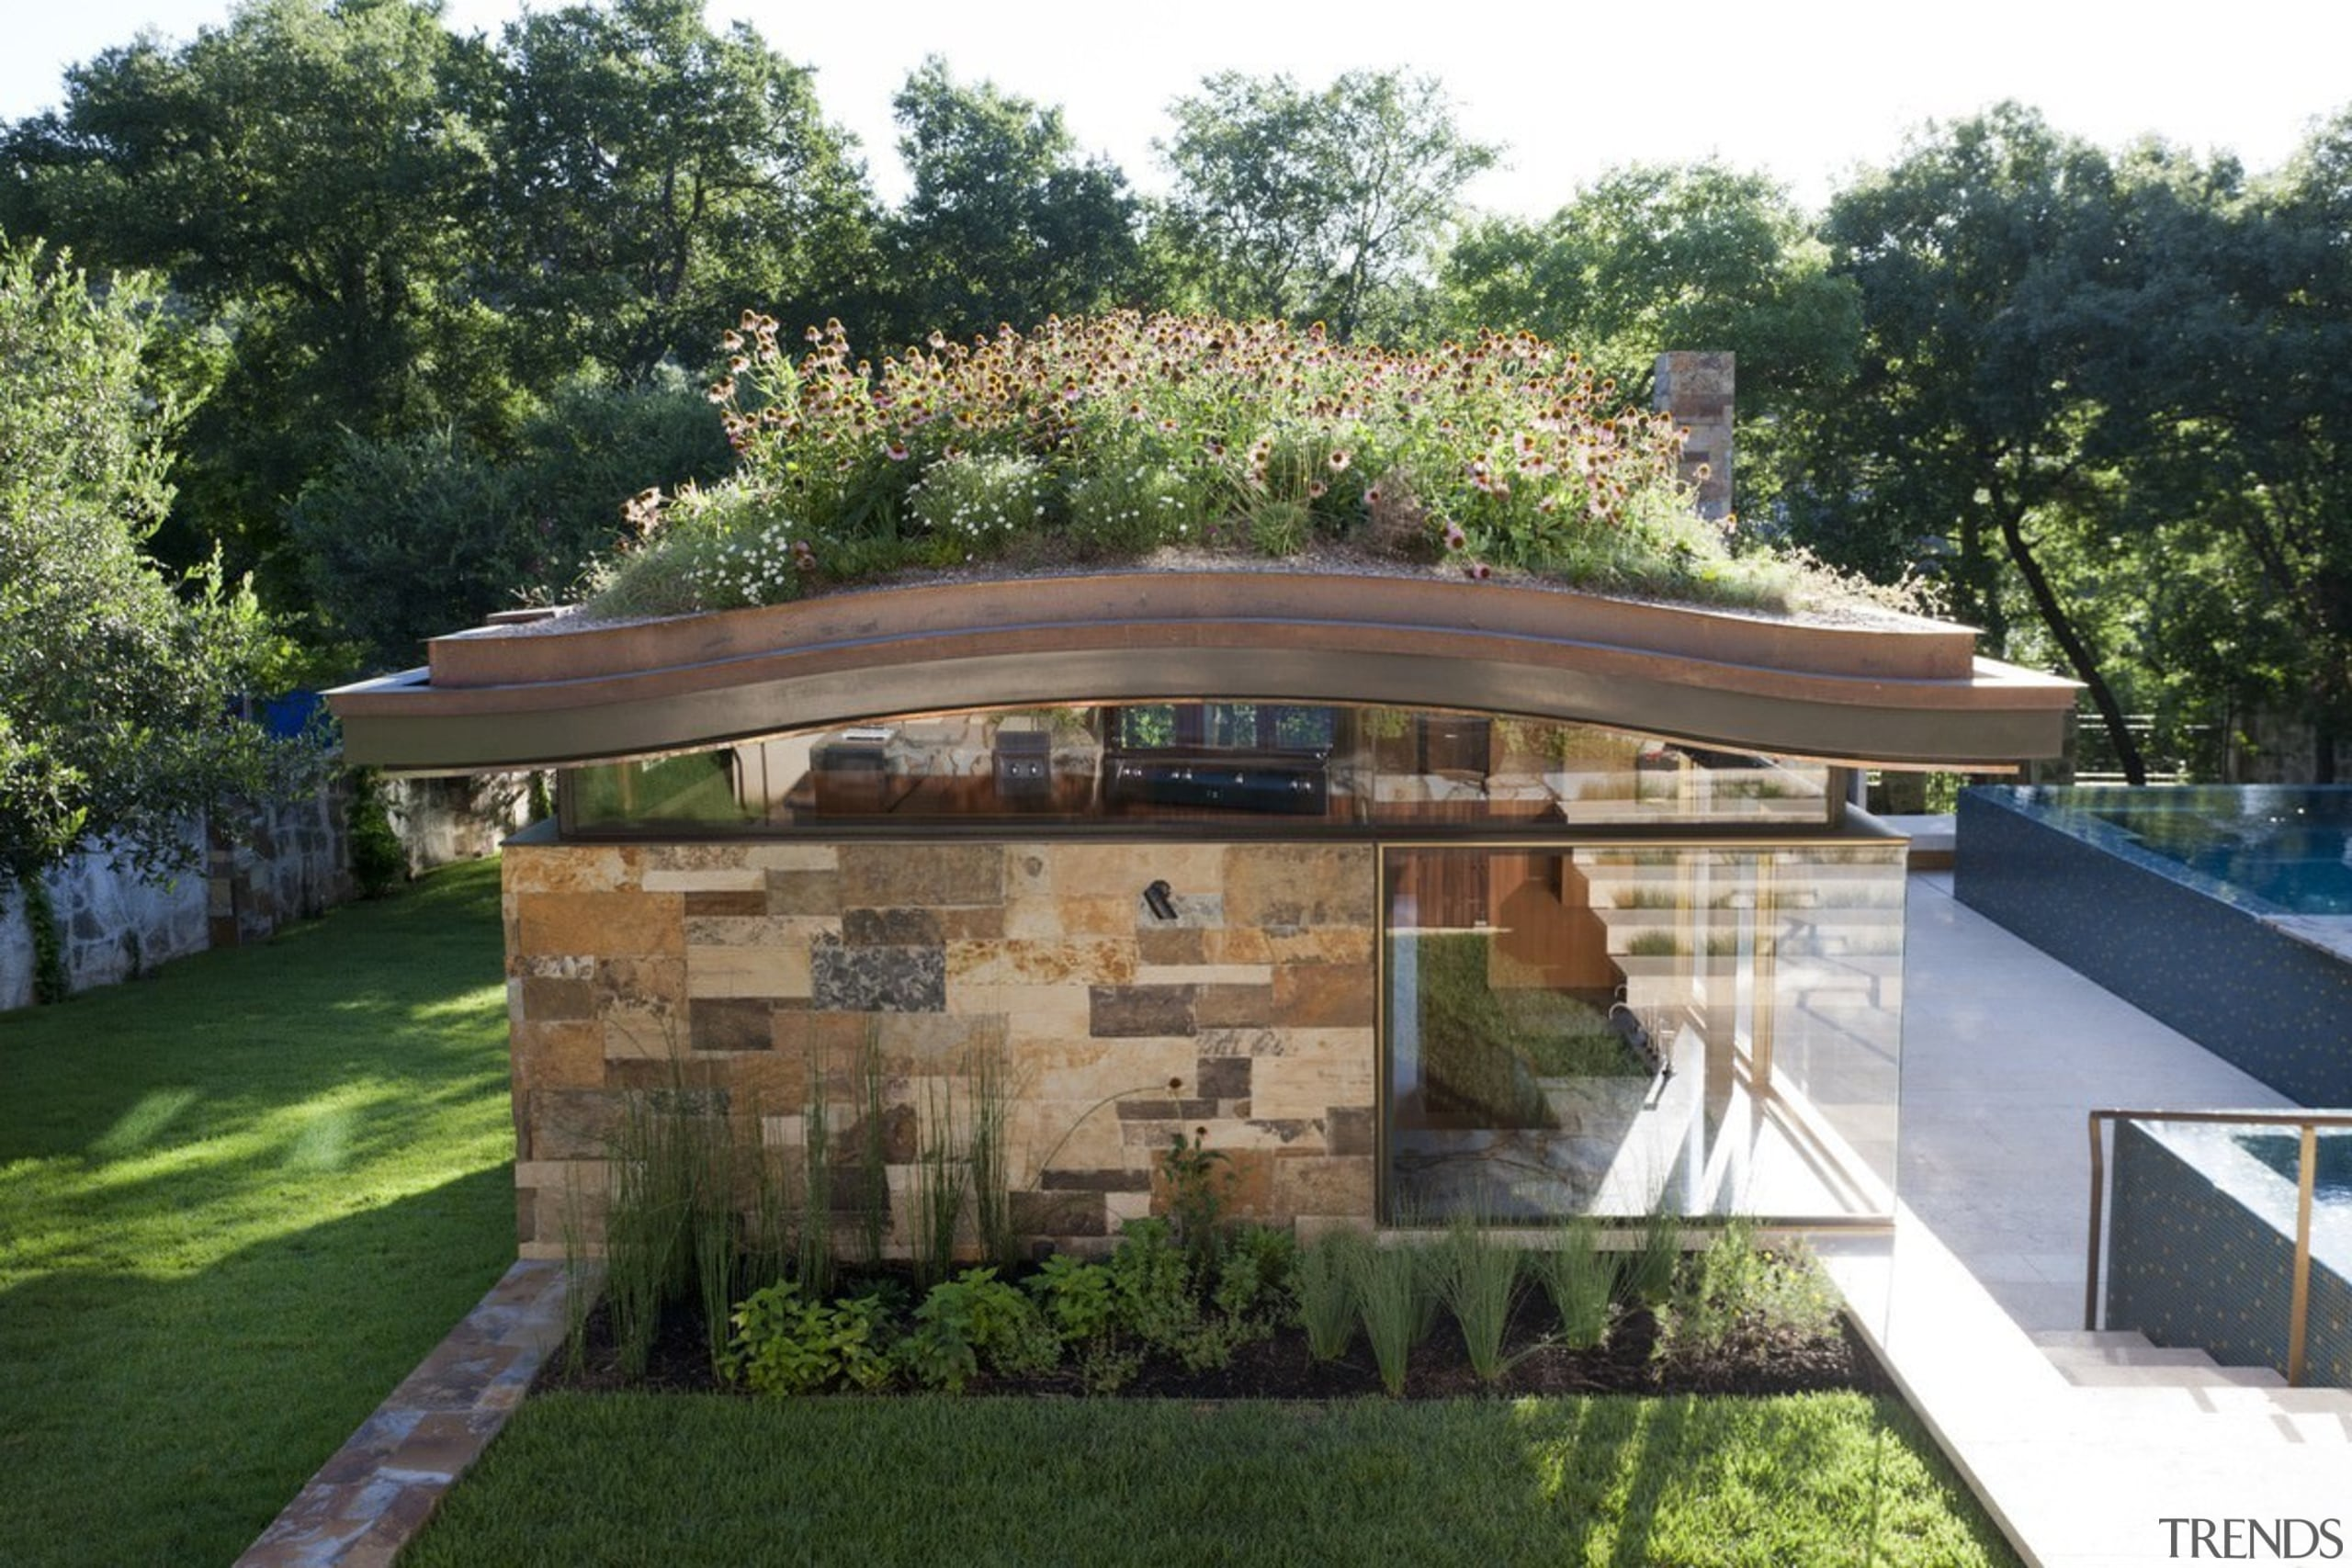 A garden roof is a great way to architecture, backyard, estate, home, house, landscape, landscaping, outdoor structure, property, real estate, residential area, roof, yard, green